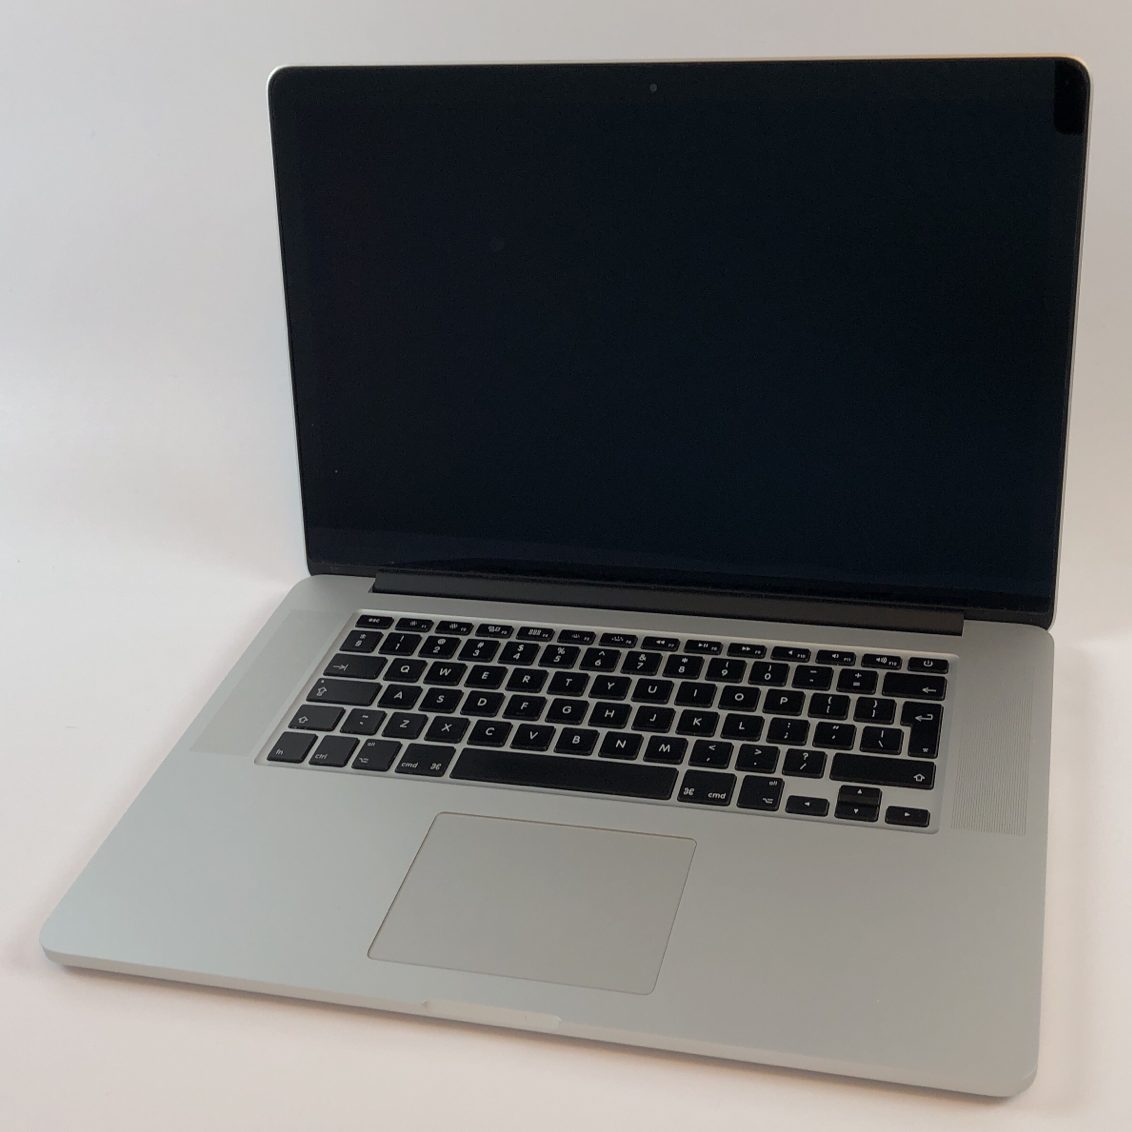 "MacBook Pro Retina 15"" Mid 2015 (Intel Quad-Core i7 2.8 GHz 16 GB RAM 512 GB SSD), Intel Quad-Core i7 2.8 GHz, 16 GB RAM, 512 GB SSD, Kuva 1"